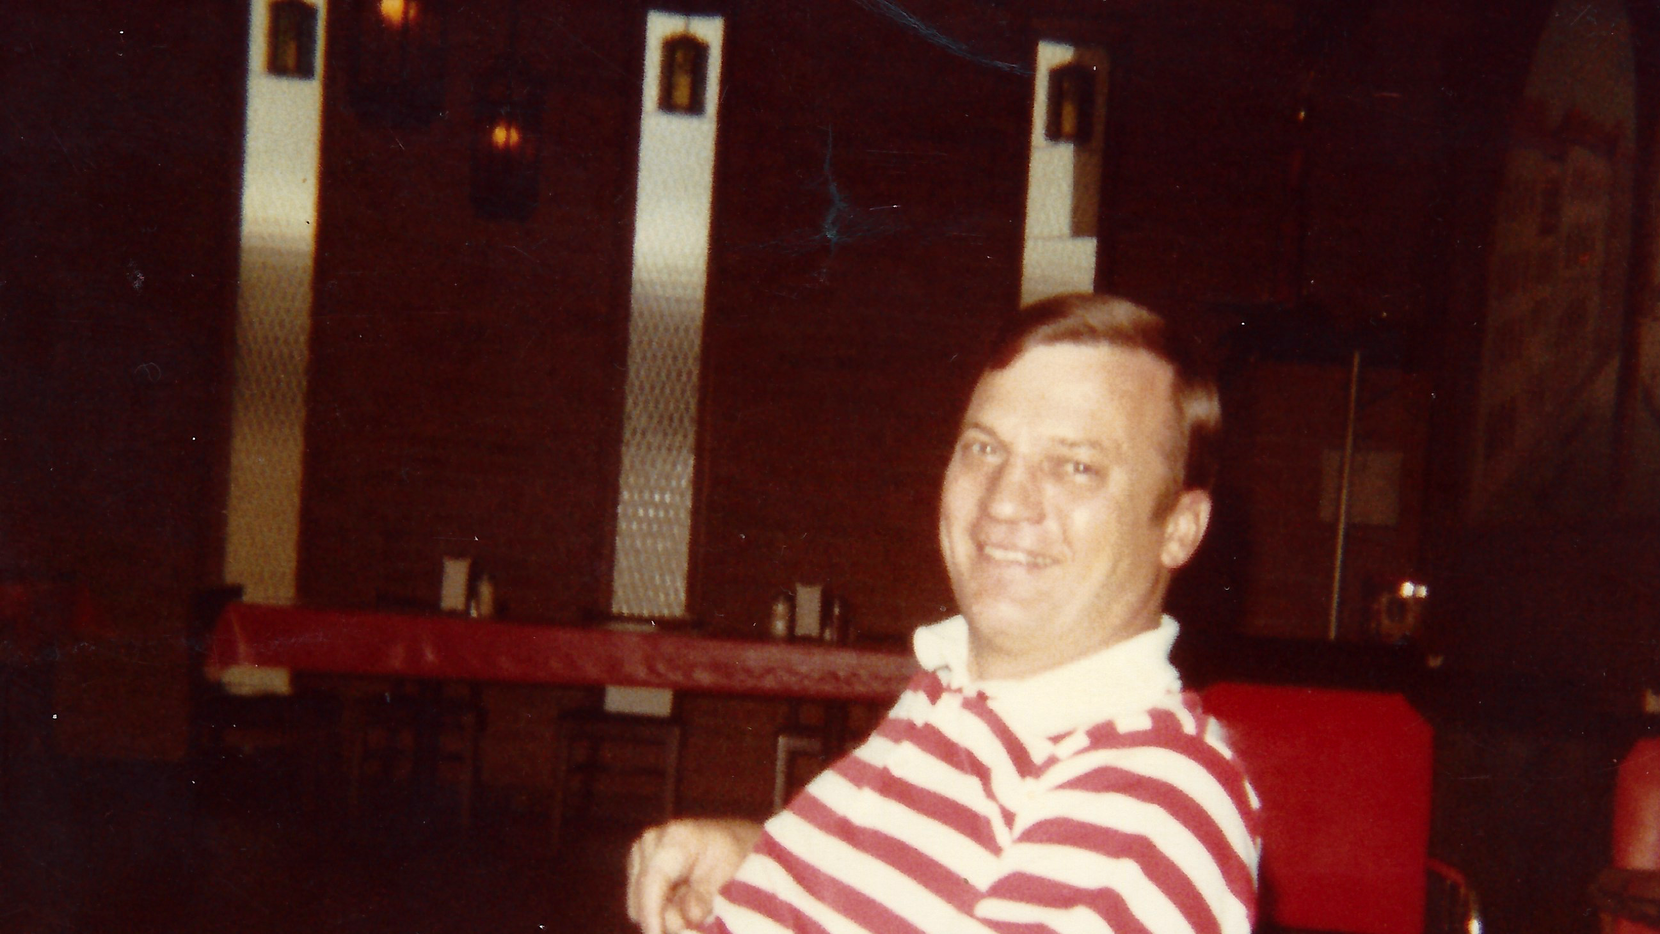 Bobby Rotenberry was owner of Pizza Getti restaurant in East Dallas.